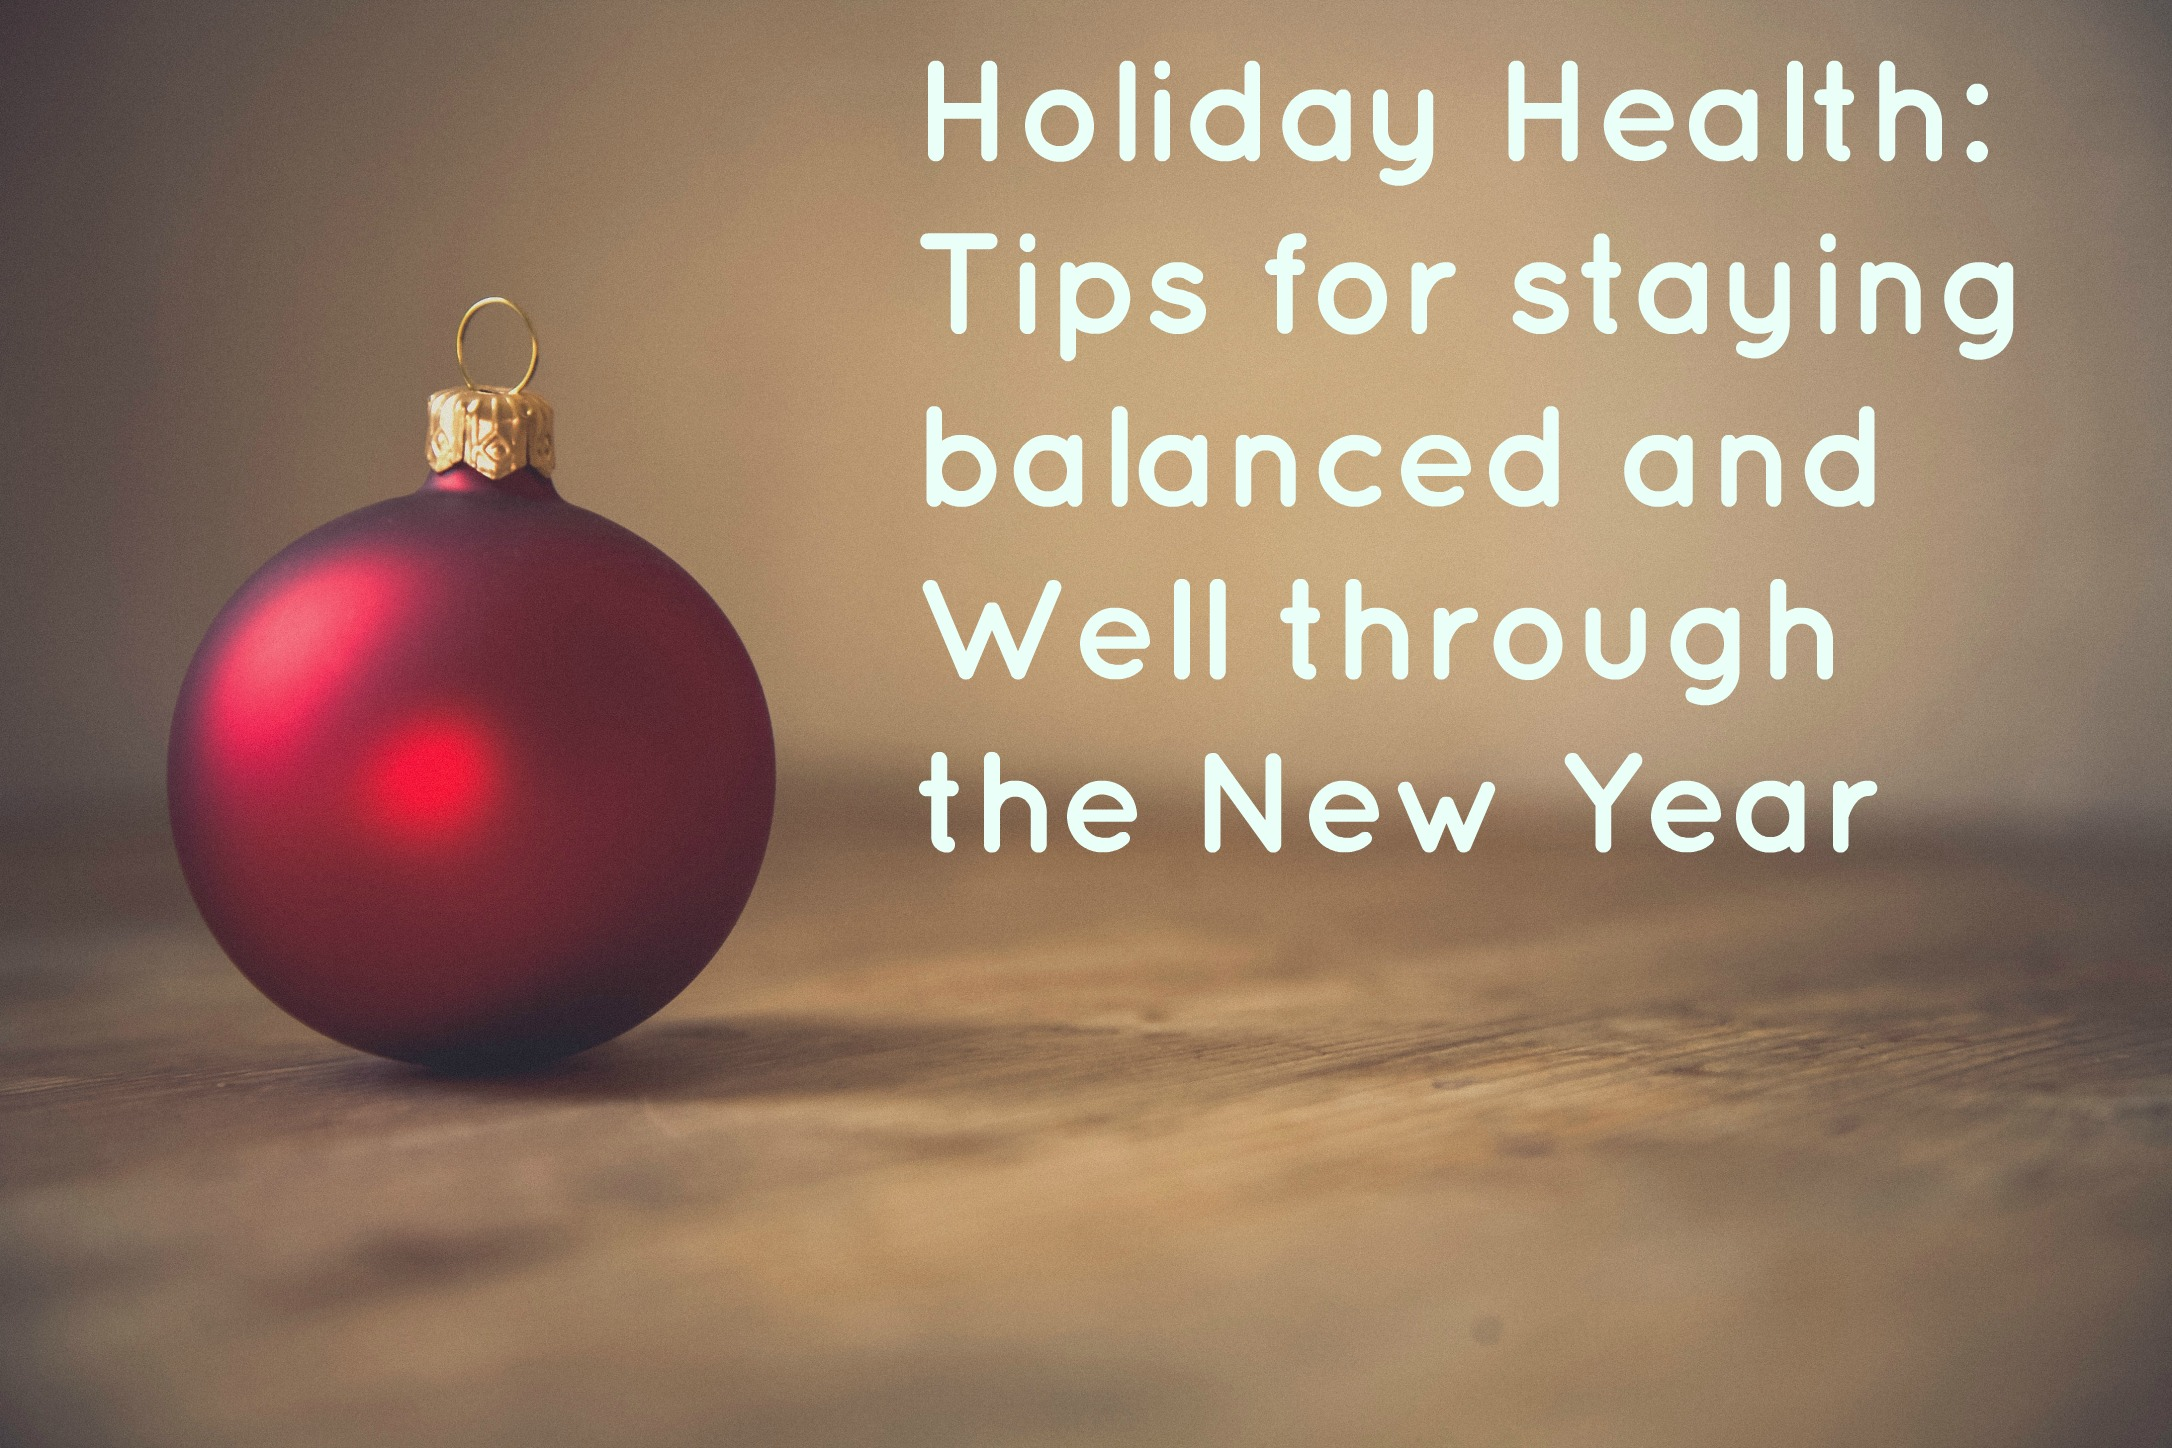 Holiday Health Tips